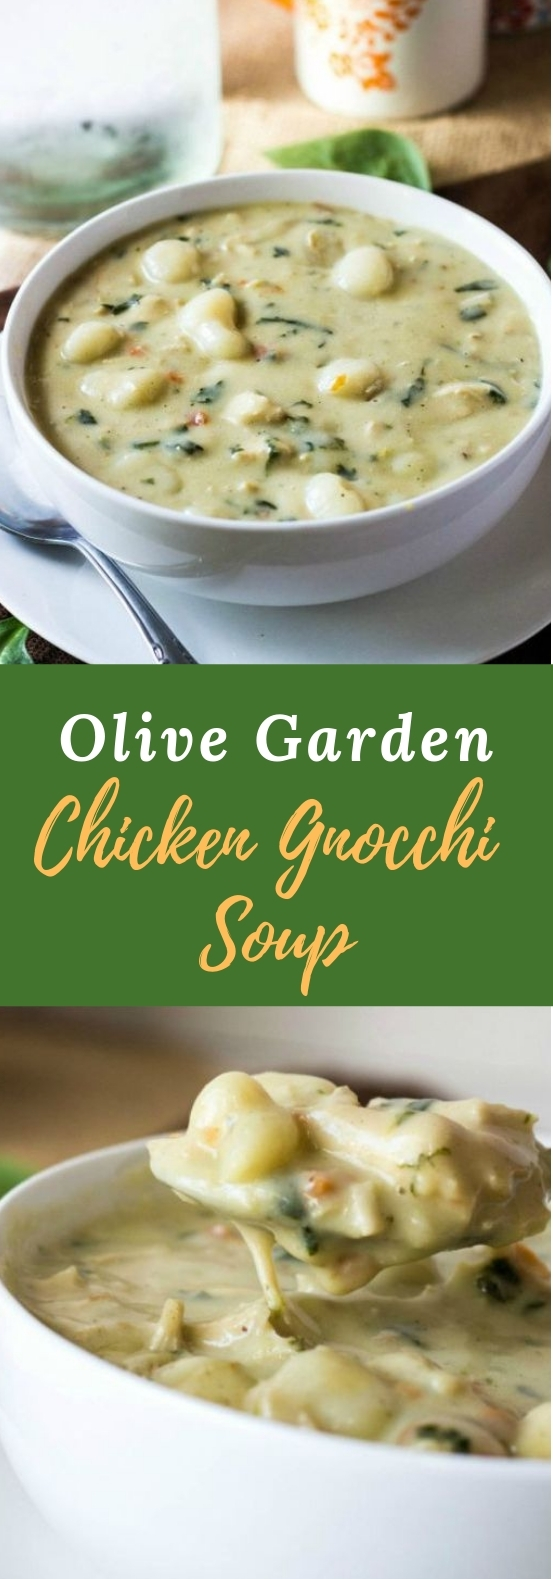 OLIVE GARDEN CHICKEN GNOCCHI SOUP #dinner #soup